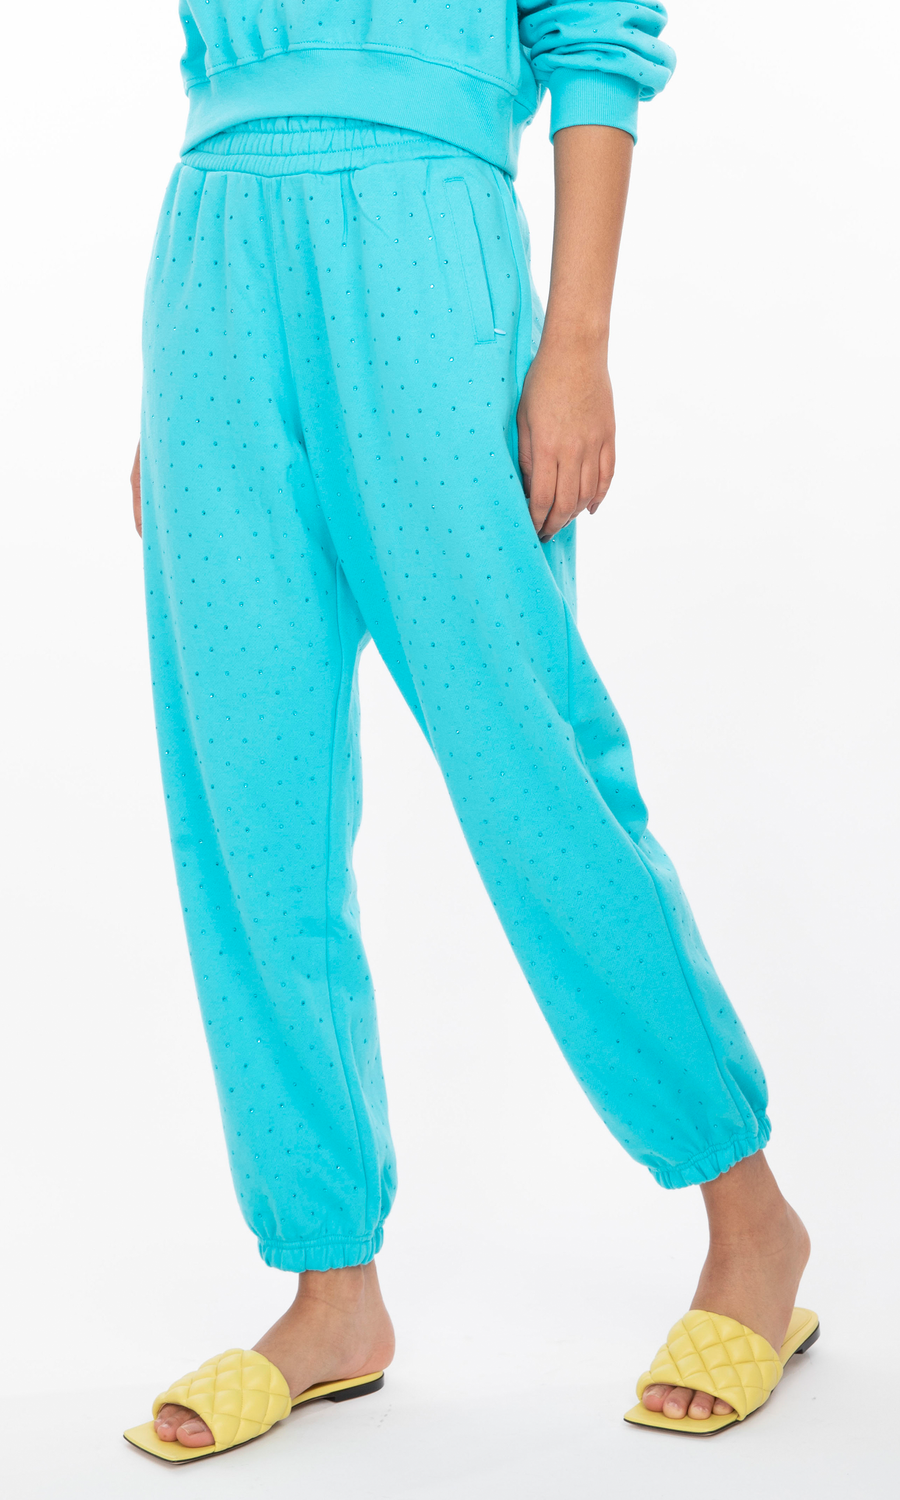 Rena Crystal Sweatpants